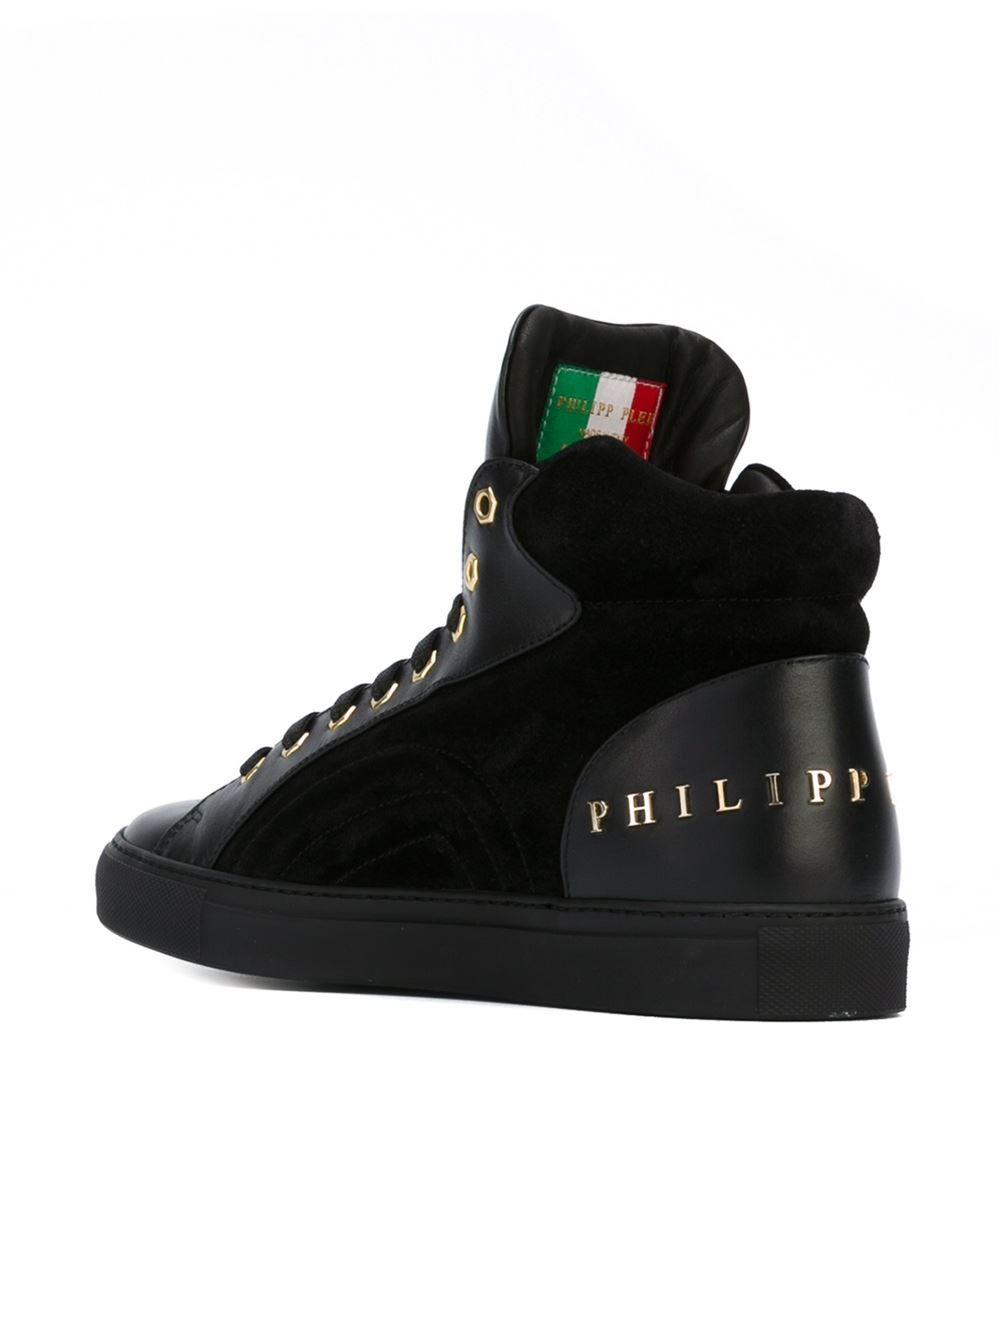 6d24e6f22 Philipp Plein  on  Hi-top Sneakers - O  - Farfetch.com